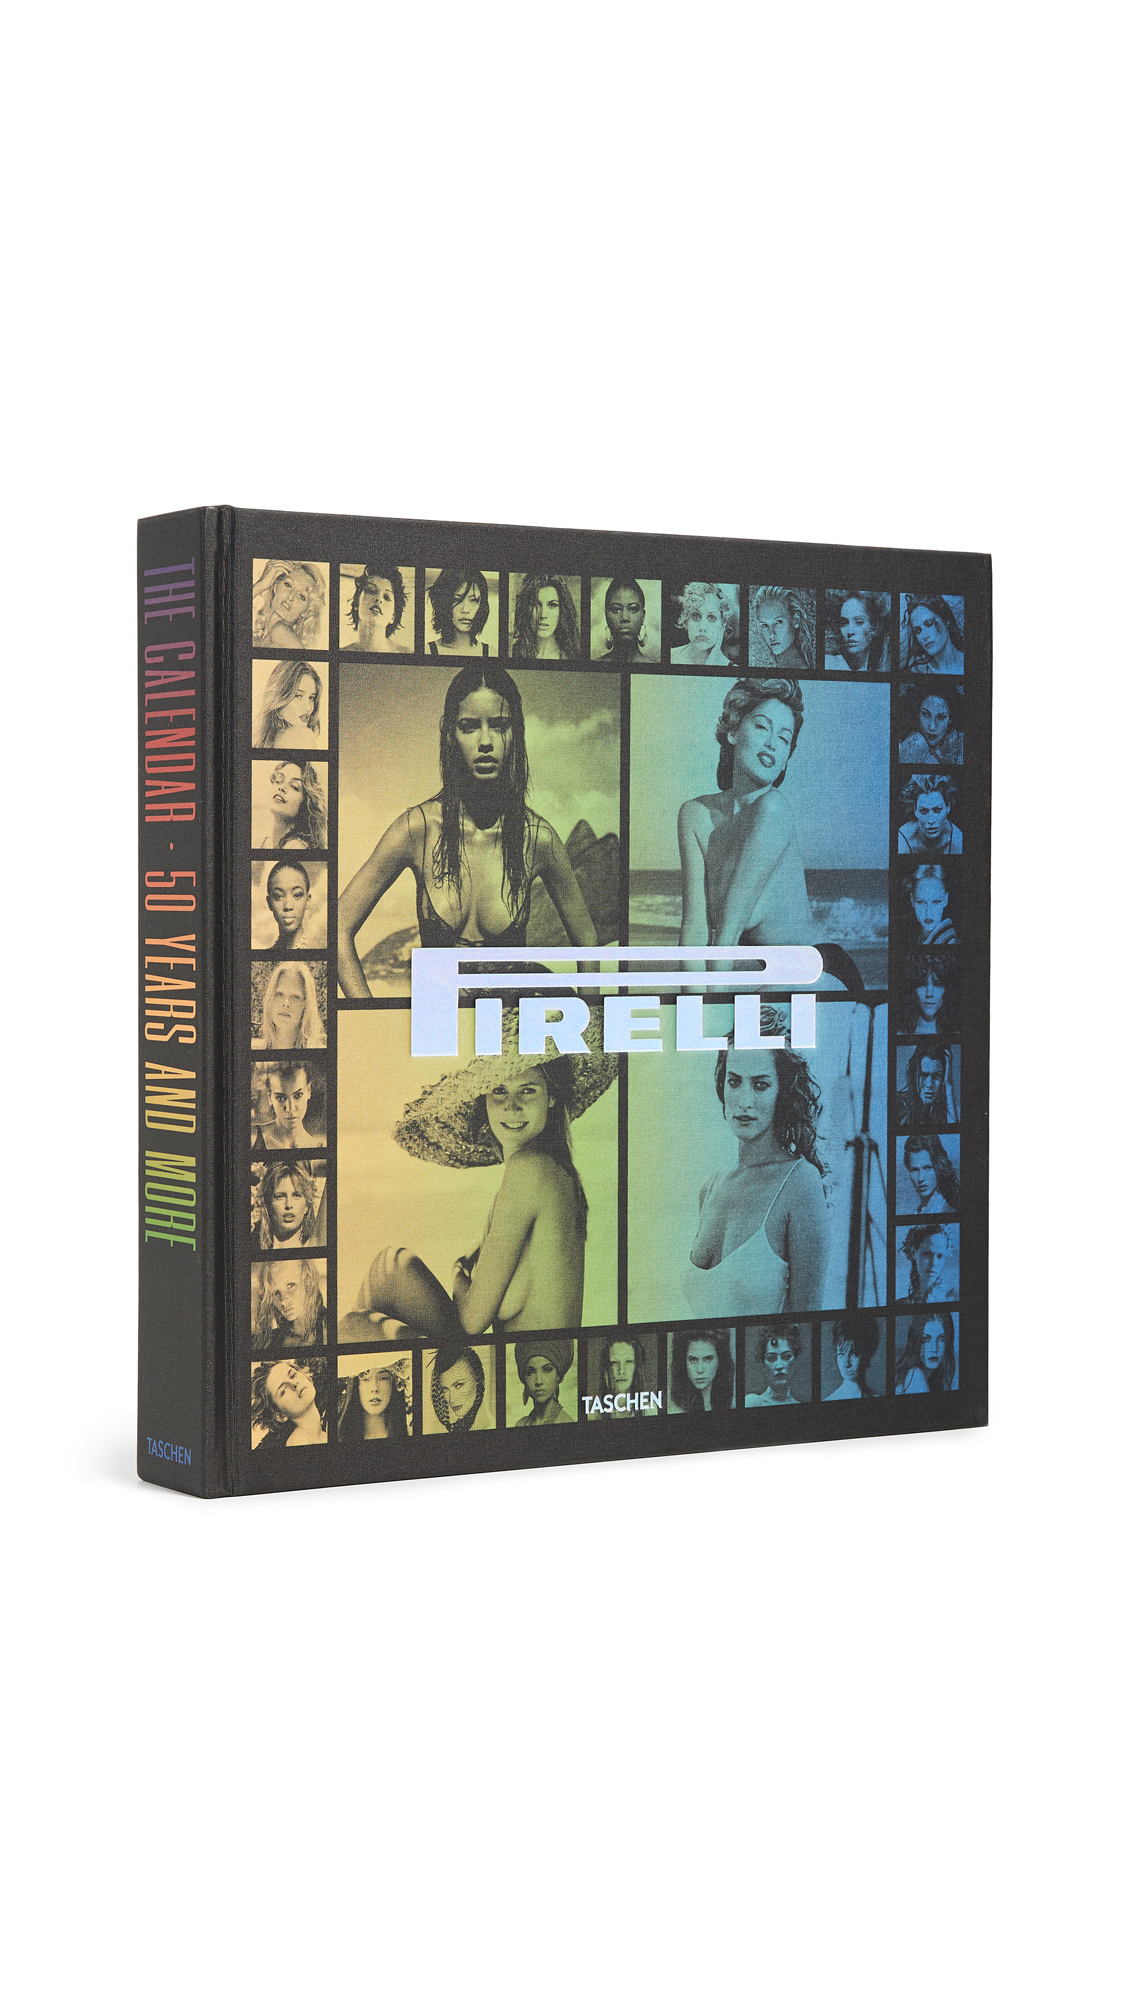 Made in Italy By Philippe Daverio Hardcover 576 pages Imprint: Taschen ISBN: 978-3-8365-5175-5 Measurements Width: 2in / 5cm Height: 12.25in / 31cm Length: 11.75in / 30cm